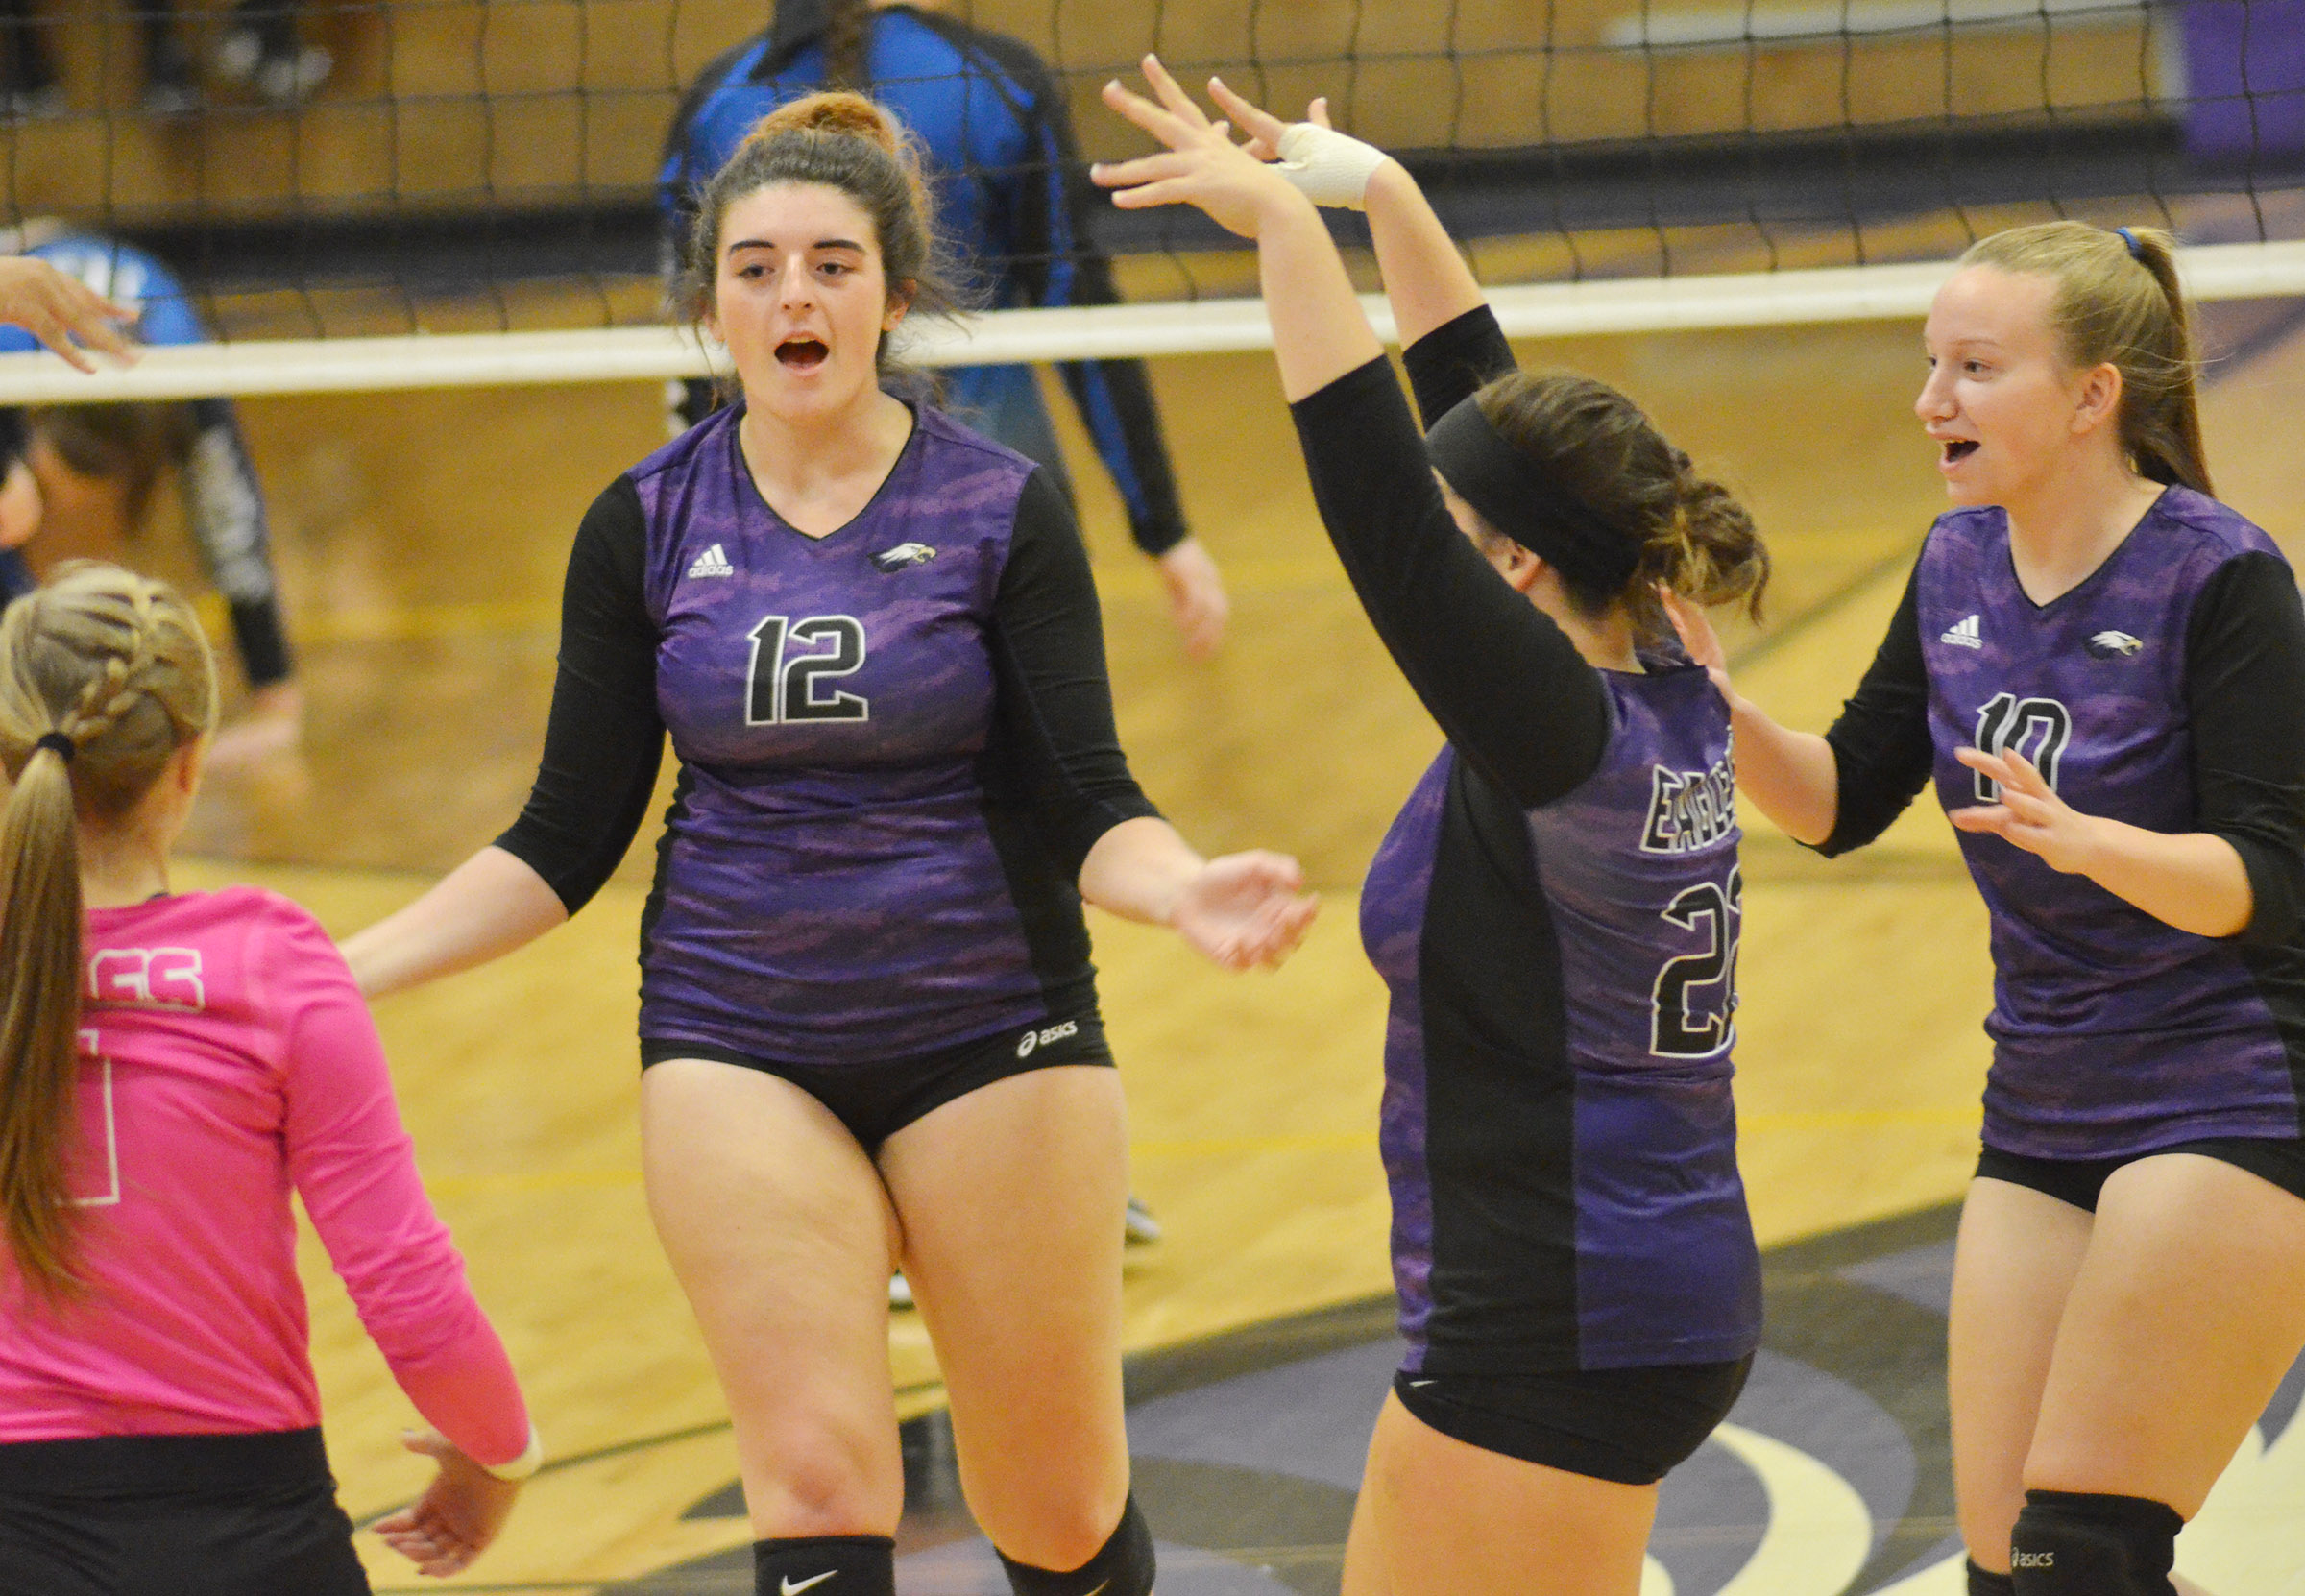 From left, CHS junior Tatem Wiseman and seniors Amanda Miles, Caitlin Bright and Madison Dial celebrate a point.